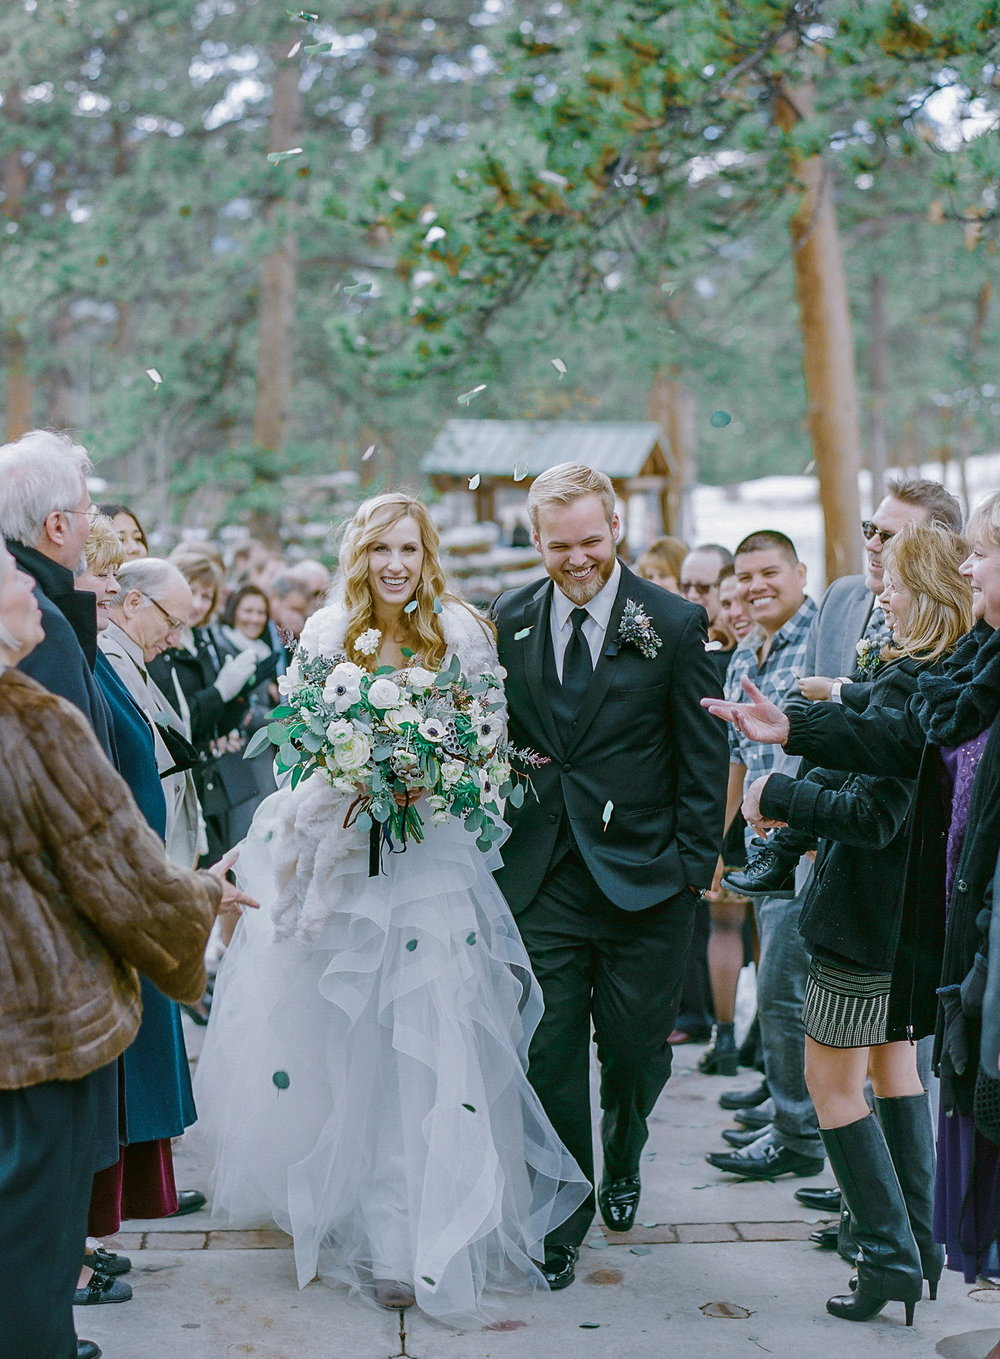 Winter Wedding in Estes Park, Colorado | Della Terra Mountain Chateau | Reem Acra Eliza Wedding Dress | Photography by Shannon Von Eschen